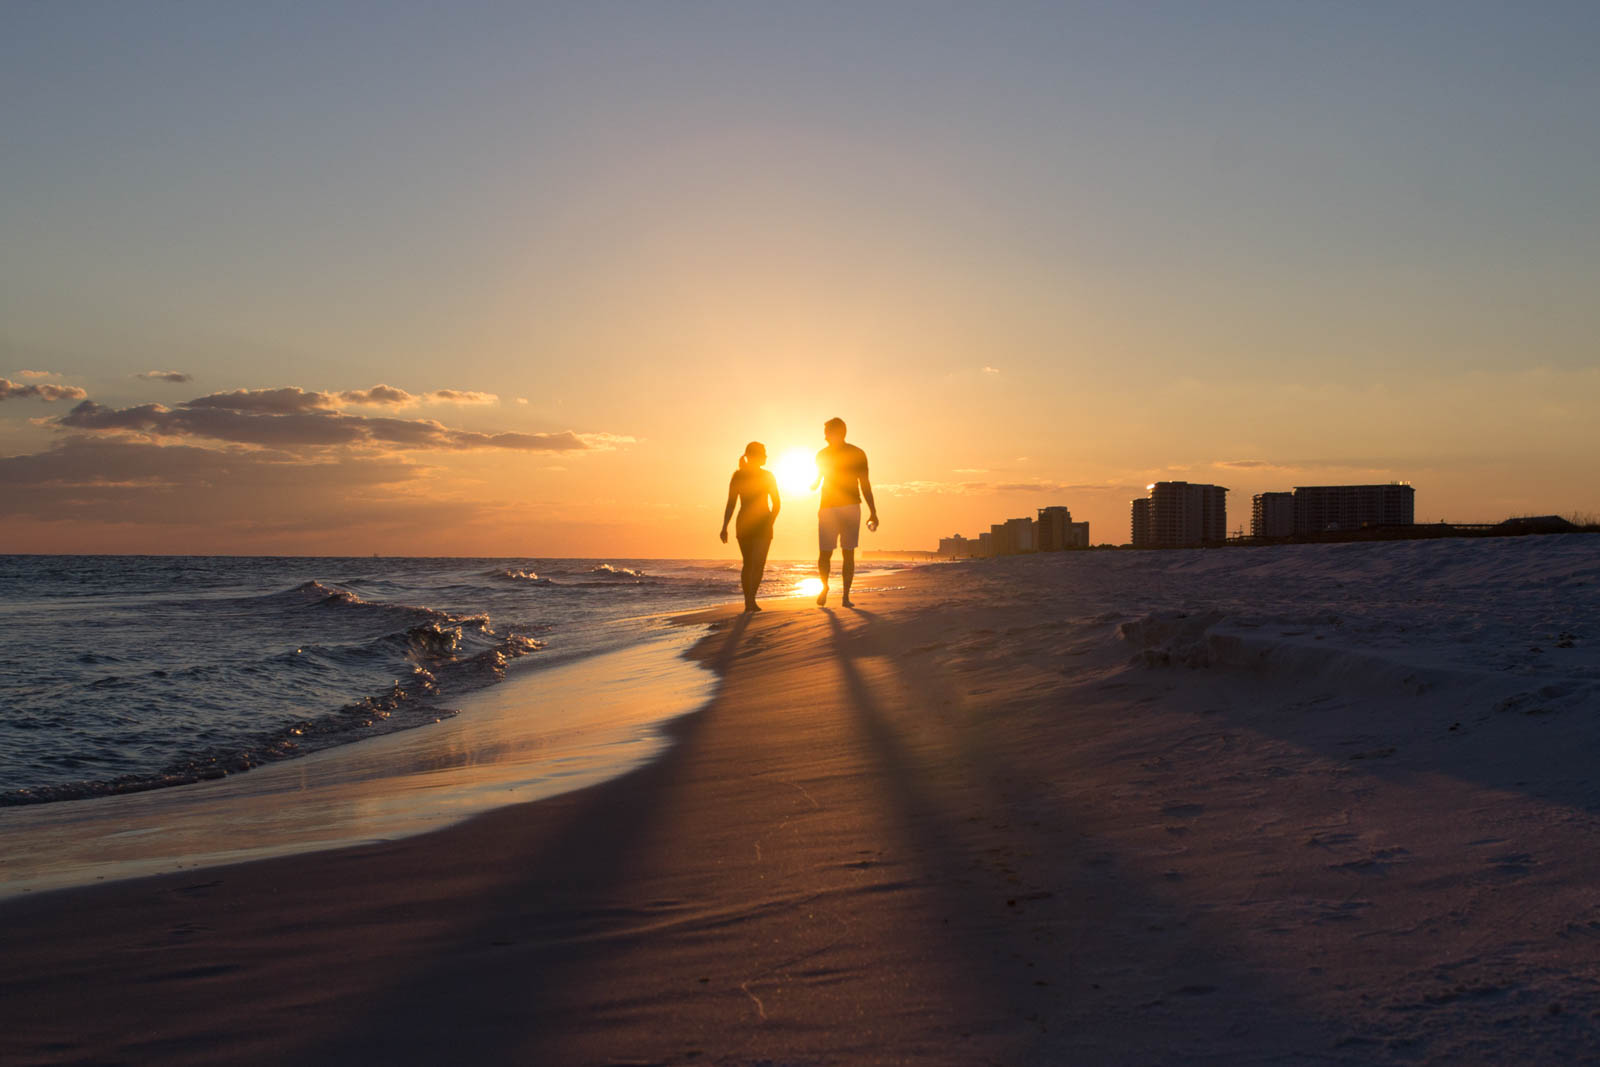 Beach sunsets are among the best cheap things to do in Orlando. There are more fun things to do in Orlando, but plan on budgeting for these unique things to do in Orlando.